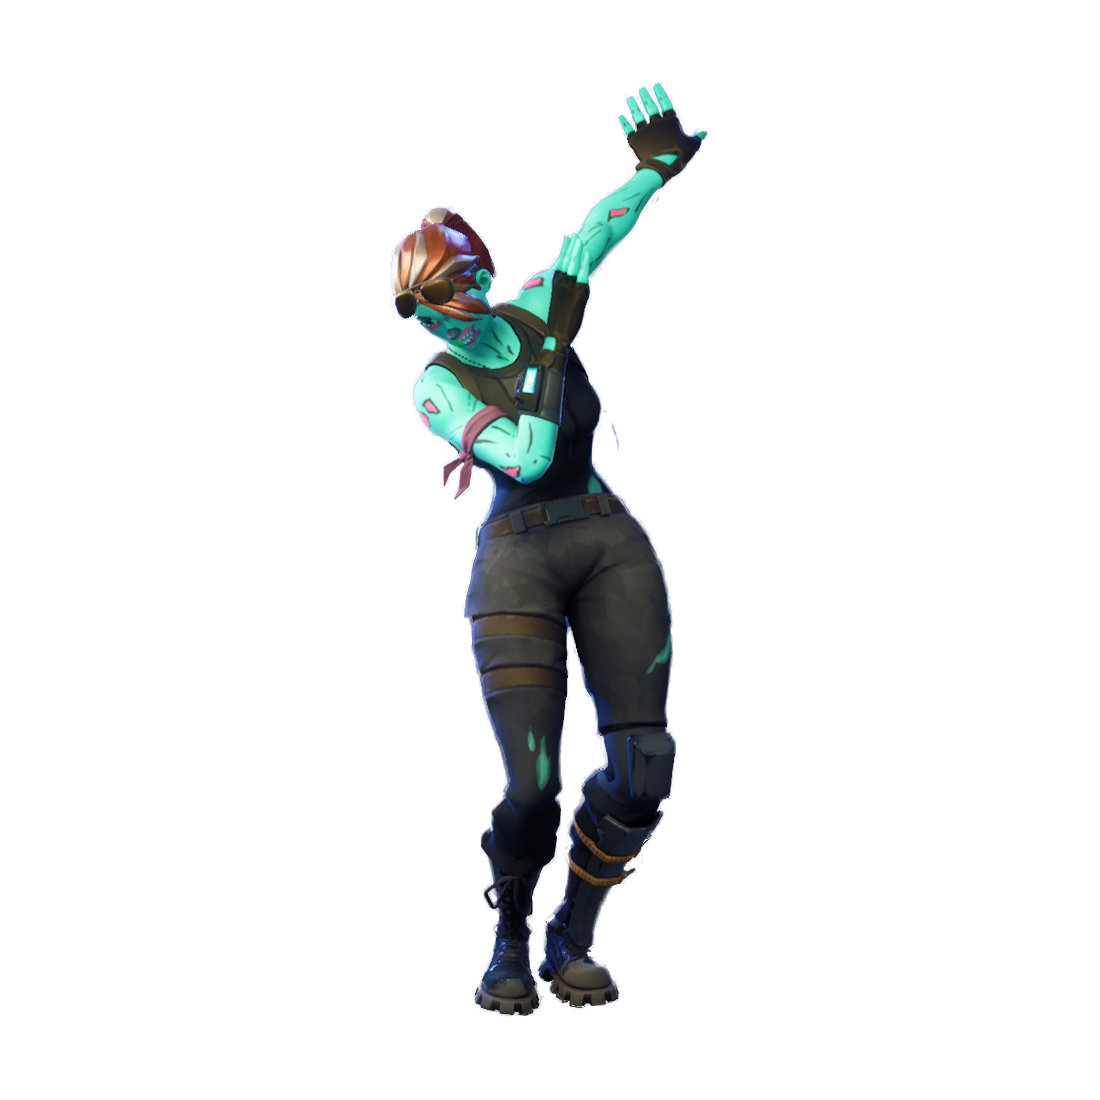 Fortnite dab png. Rare infinite emote cosmetic